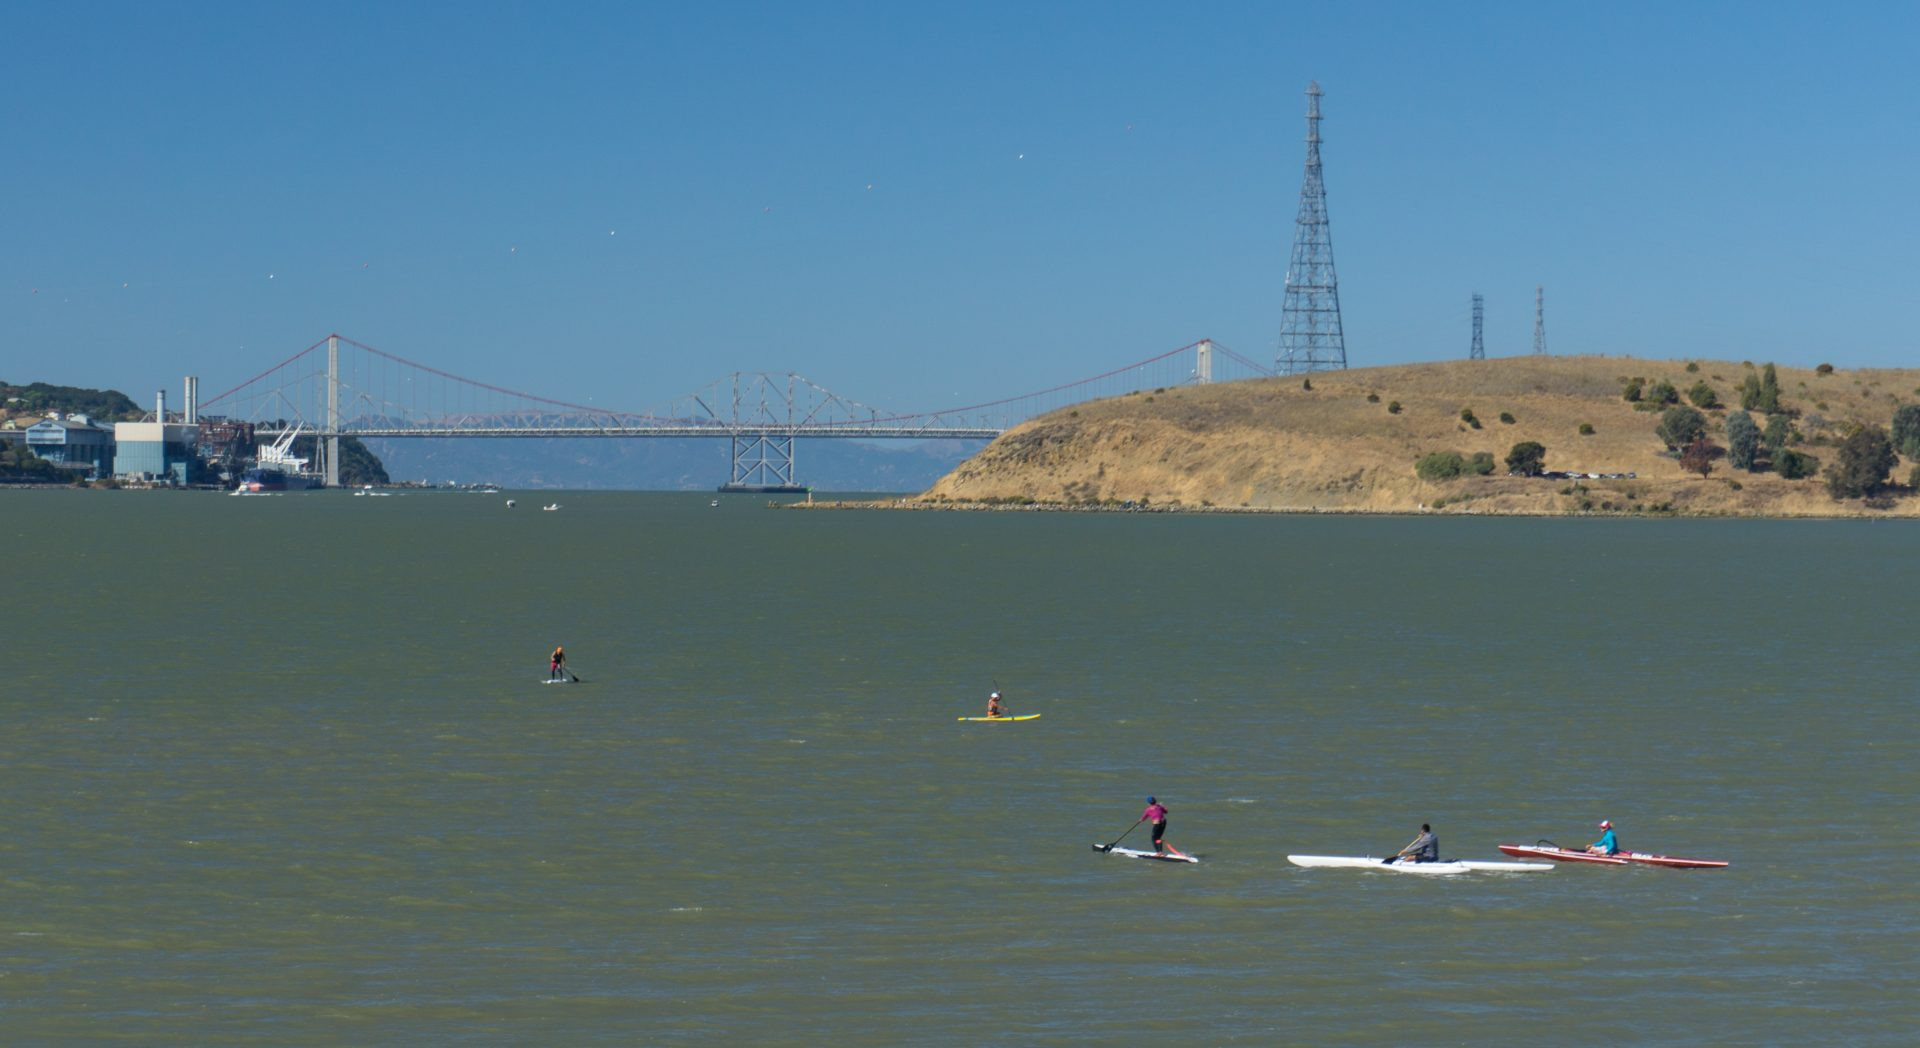 paddlers in bay with Carquinez Bridge in background